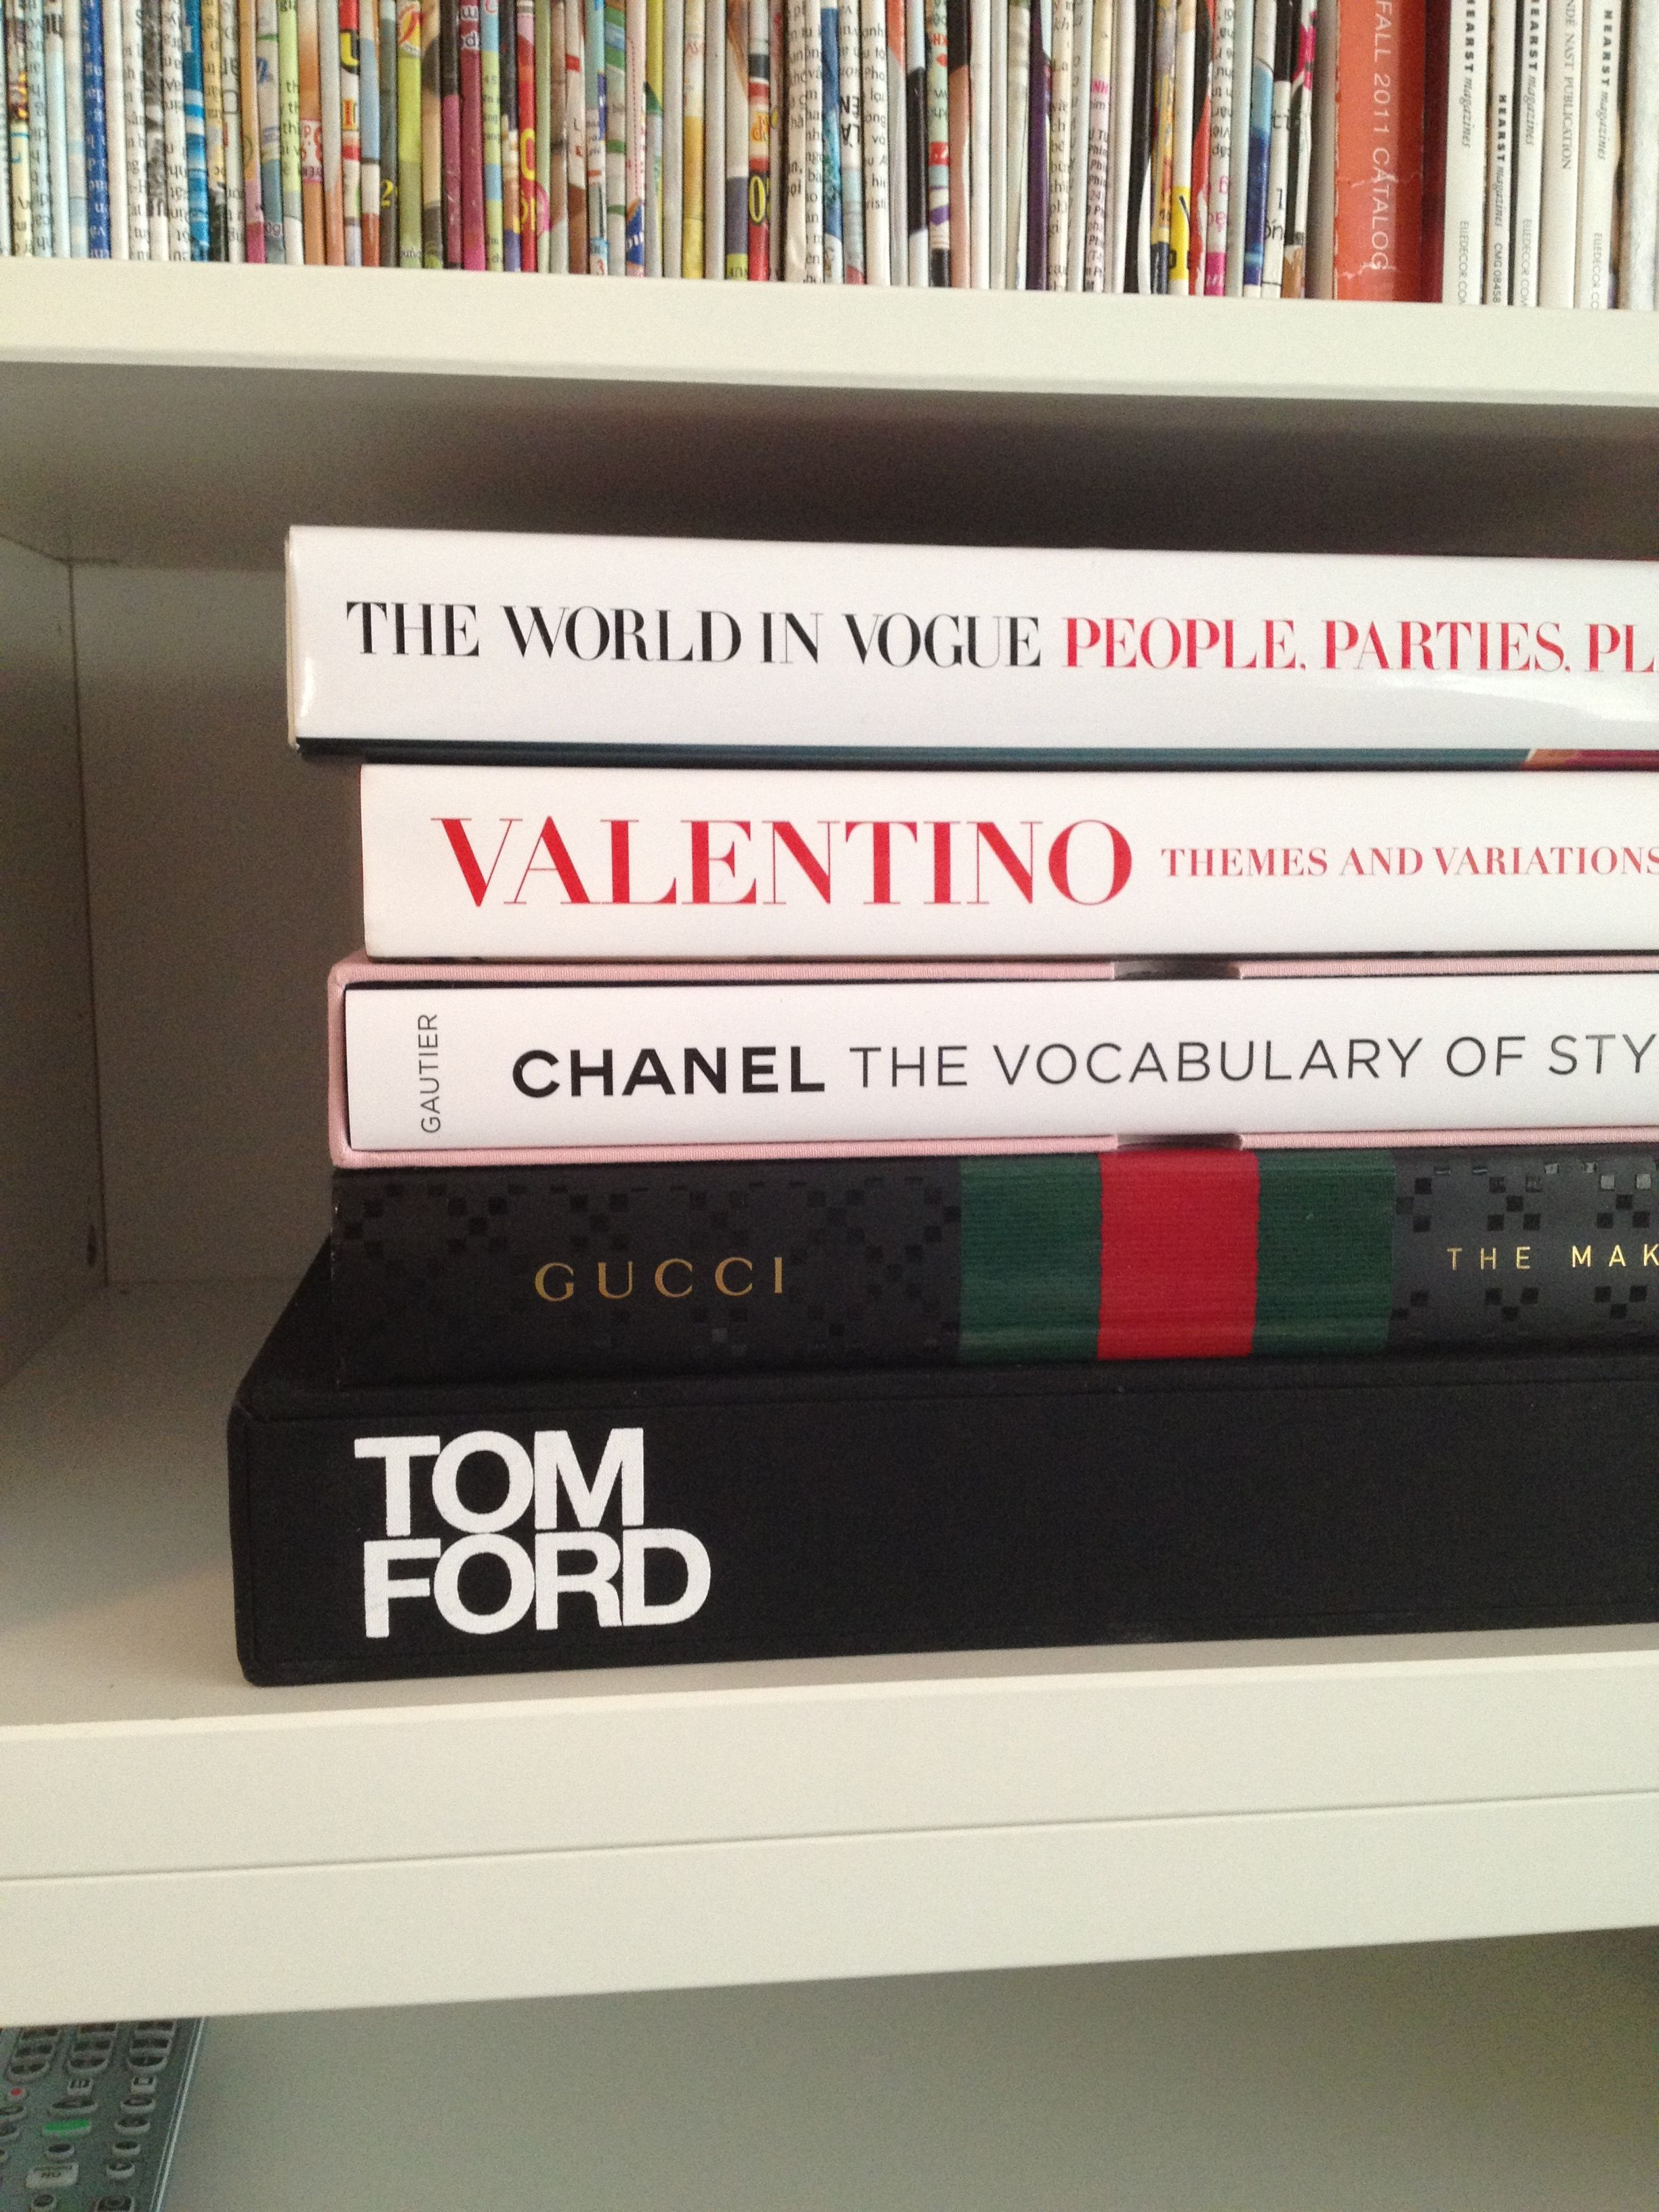 Tom Ford Book Valentino Book Vogue book Chanel Book Fashion